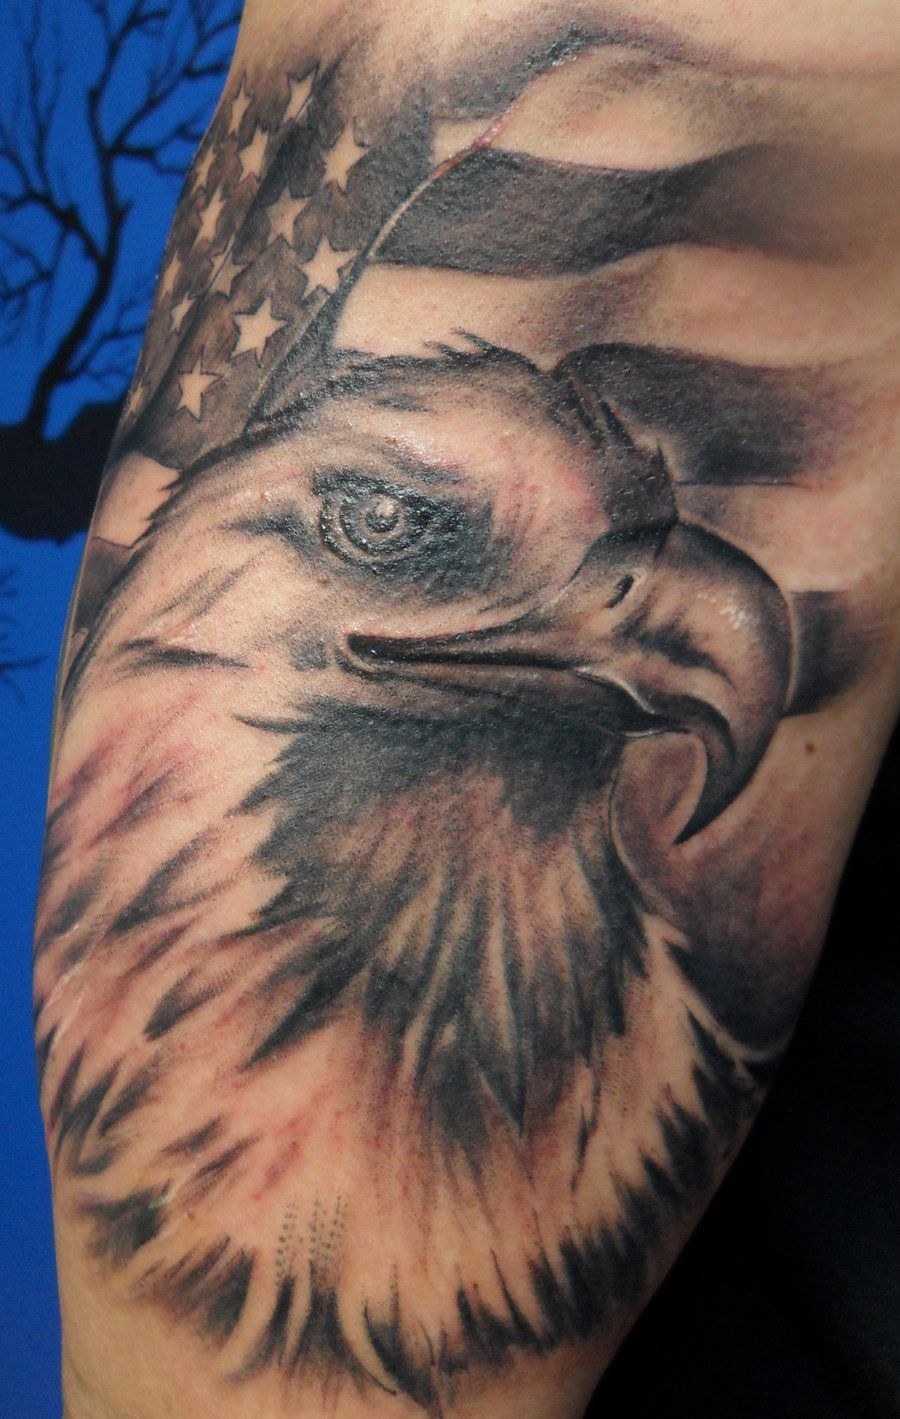 American eagle tattoos high quality photos and flash - Eagle Tattoos For Men Traditional Art Body Art Body Modification